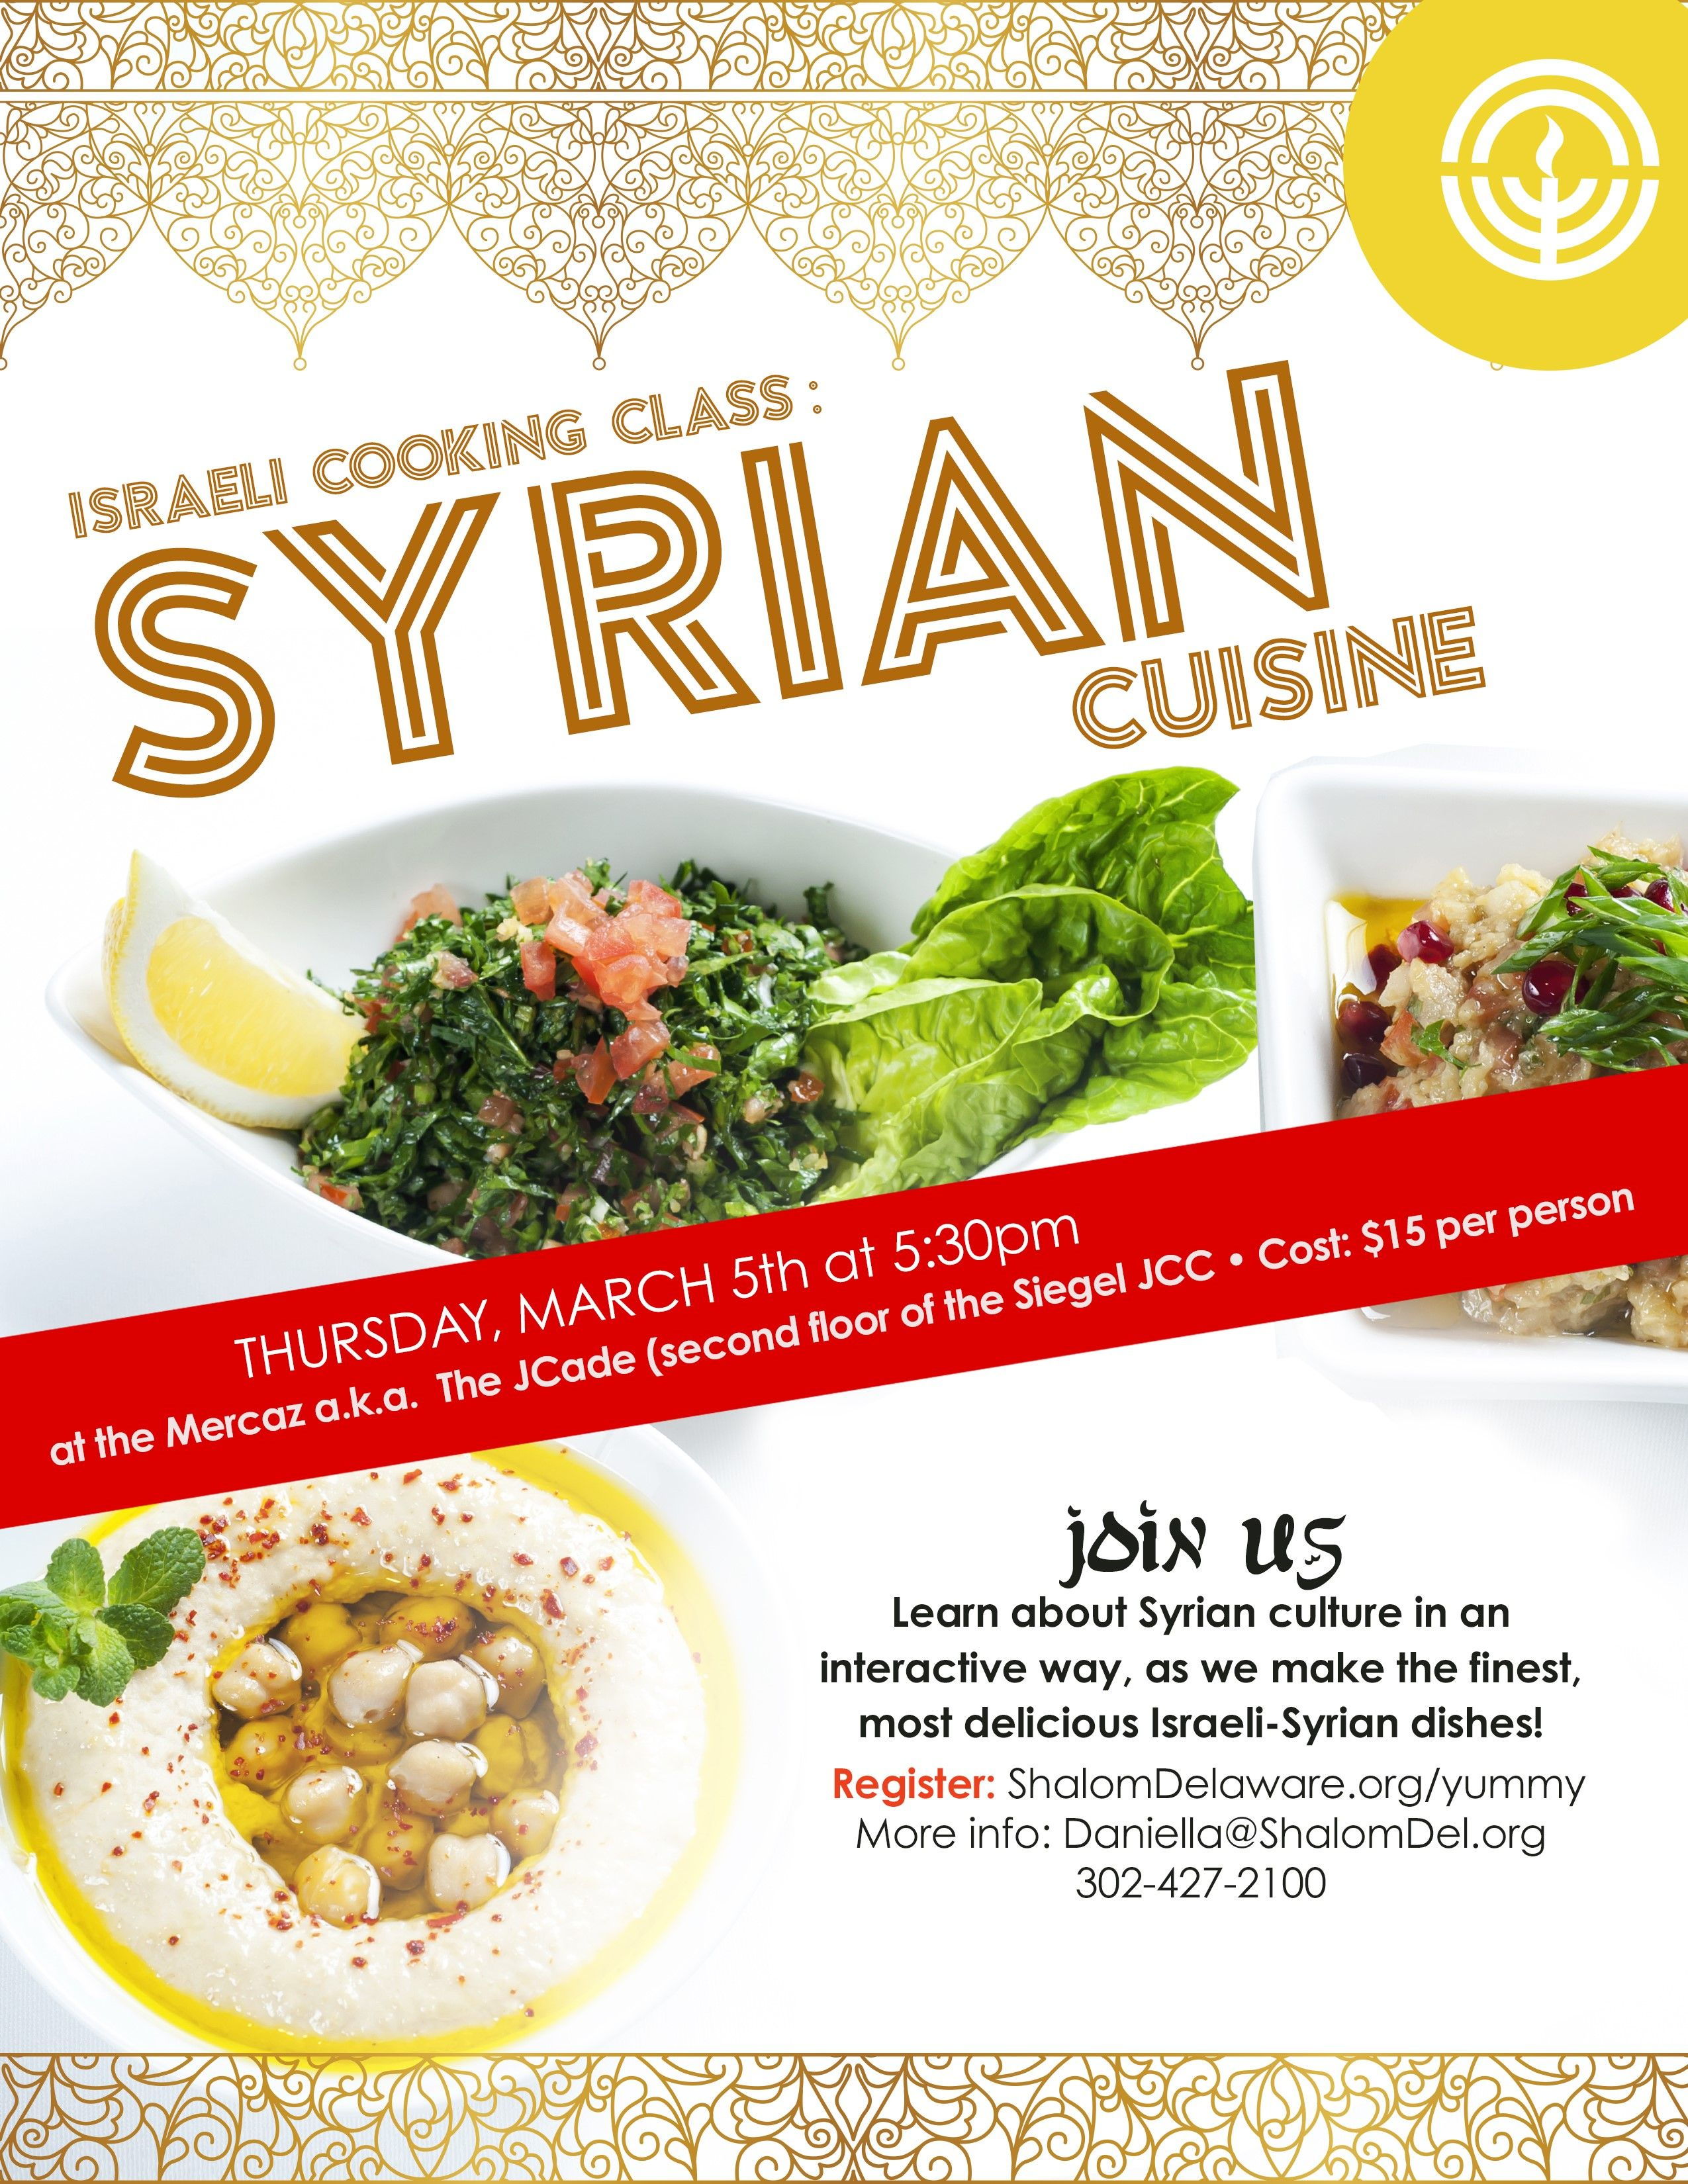 Israel and overseas cooking class: Syrian cuisine and culture